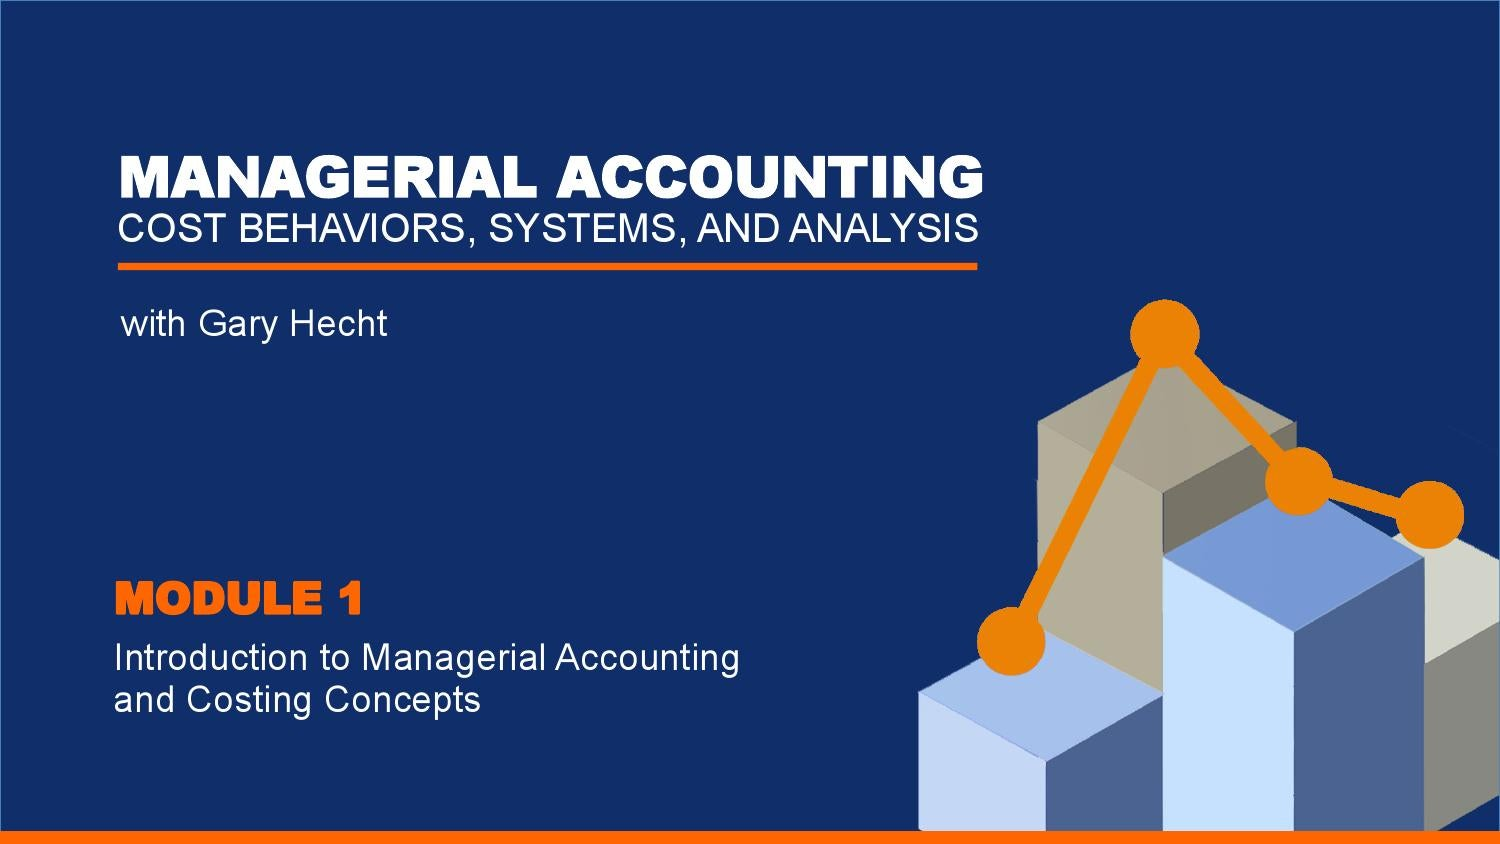 a study of accountants and accounting An avalanche of foreign accounting students has hit our universities, prompting a fight between the government and big firms about how many accountants we actually need.